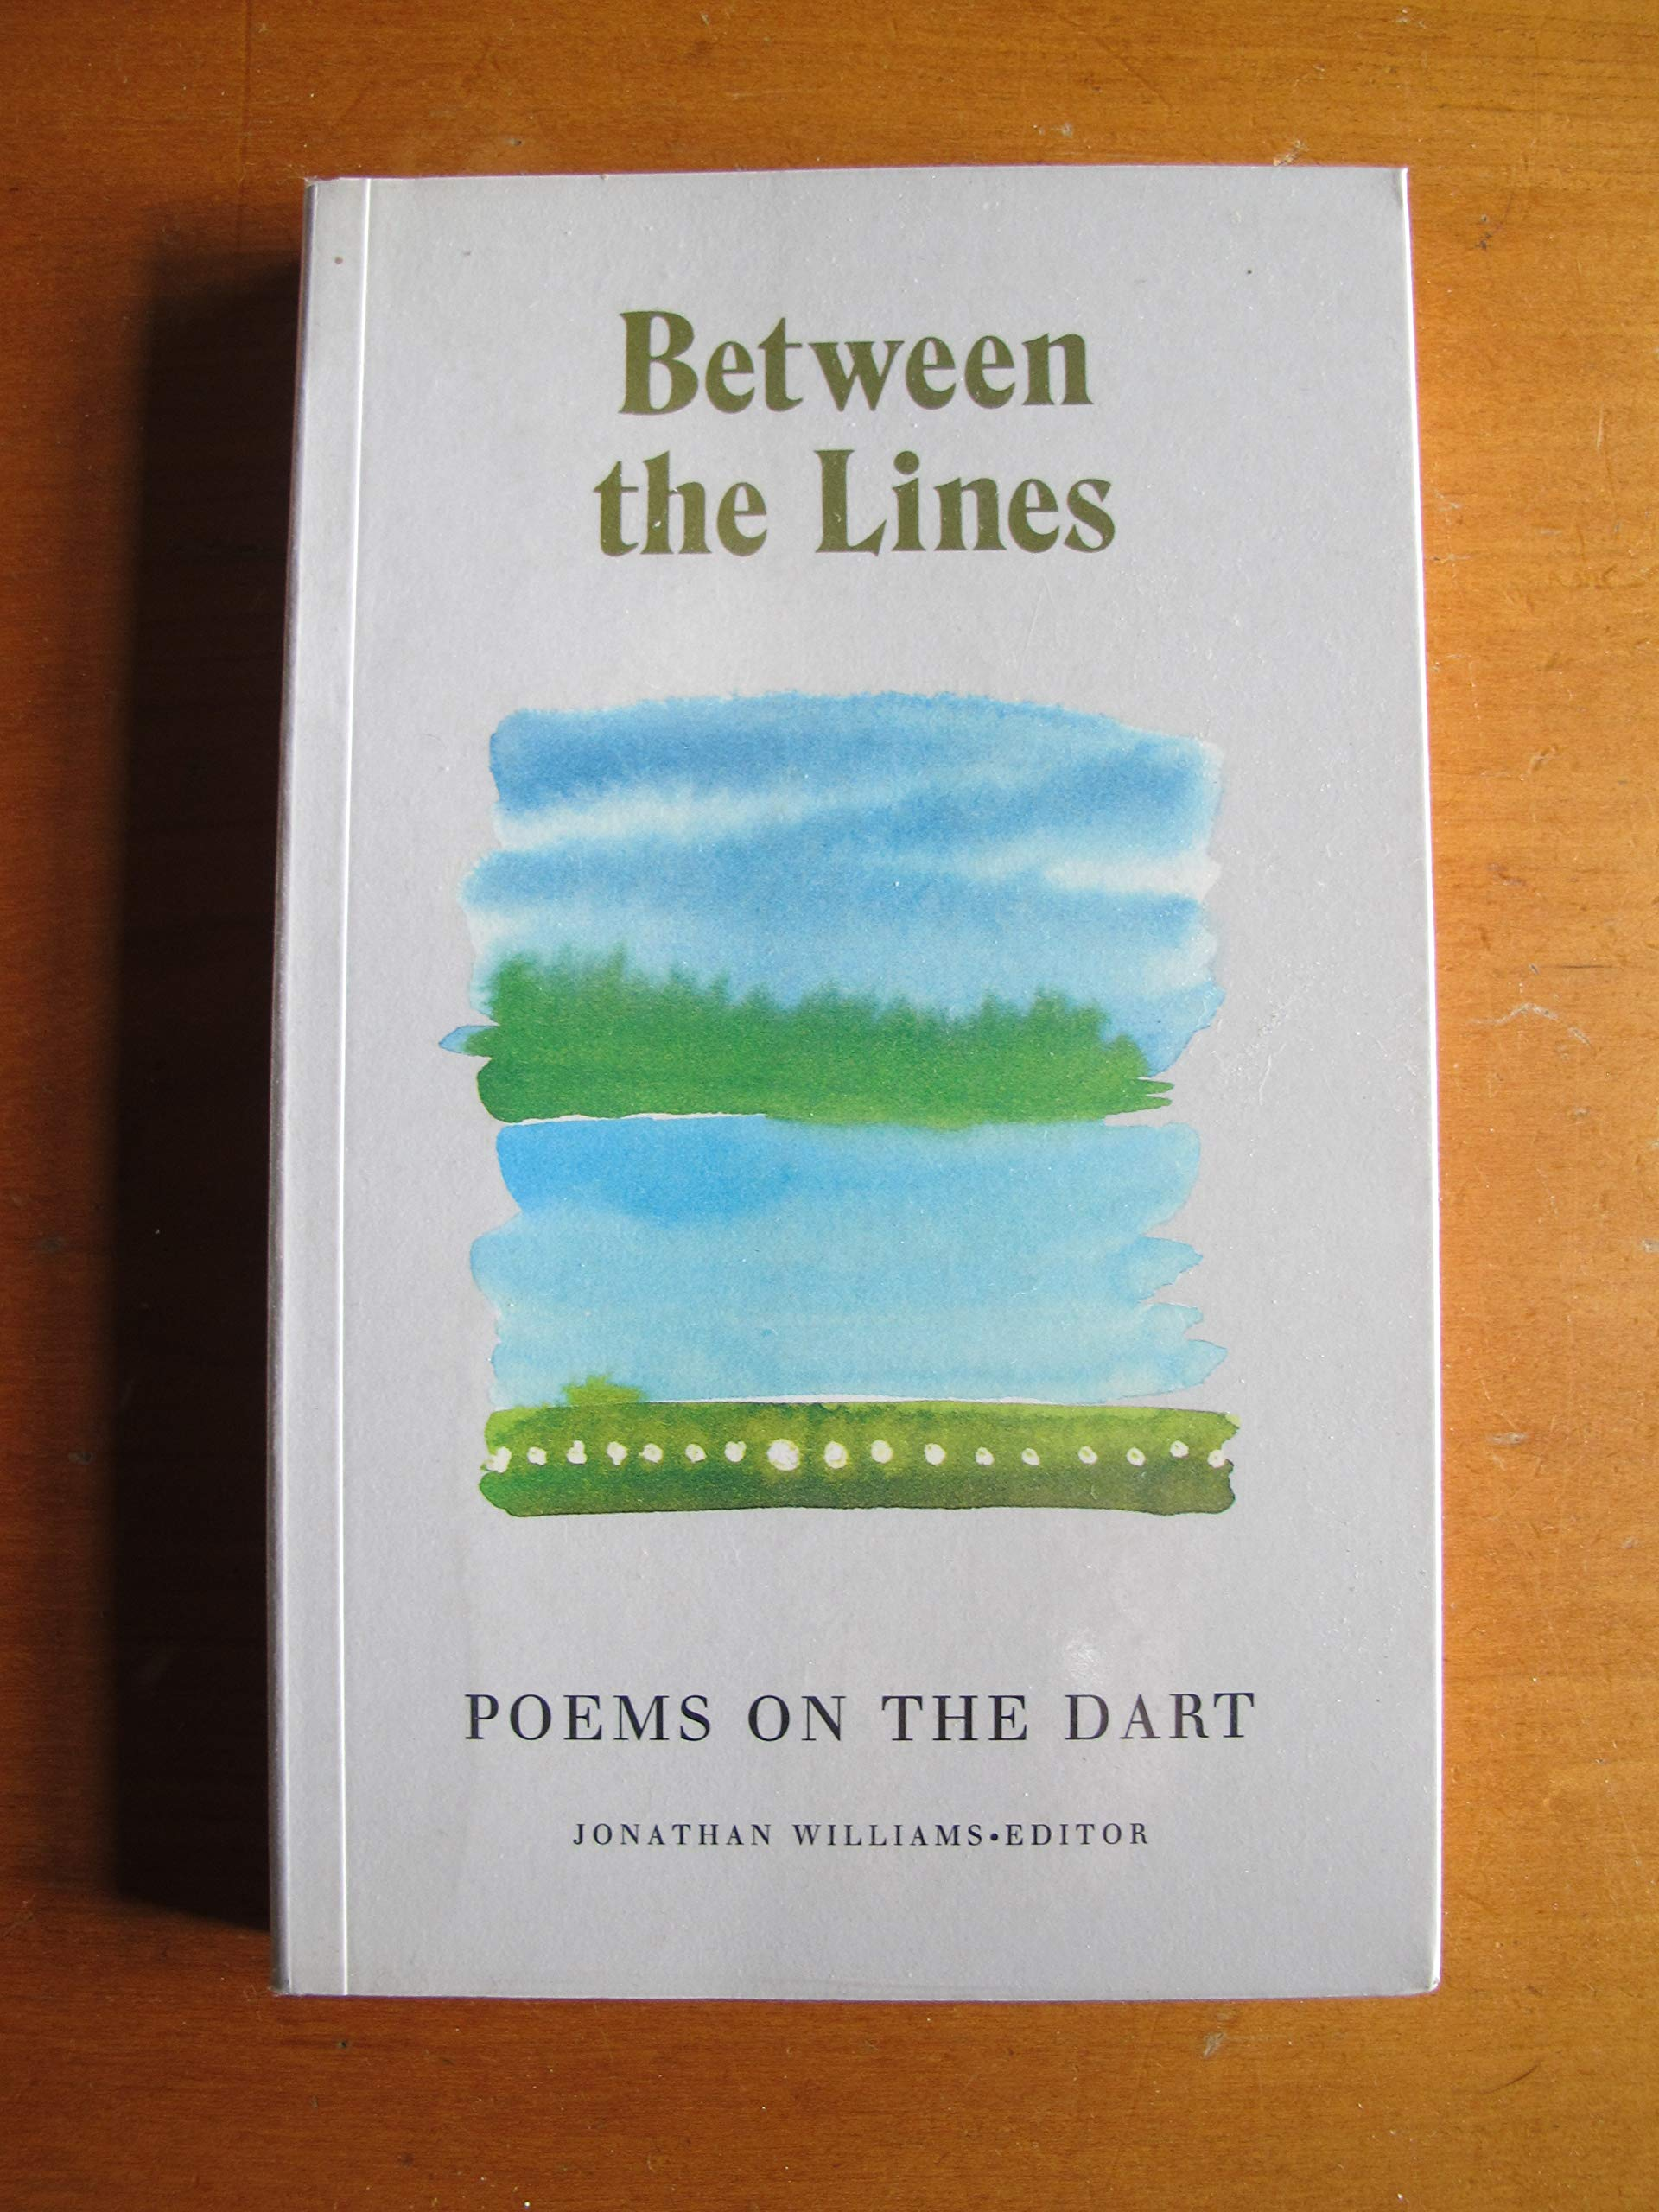 Between the Lines: Poems on the Dart